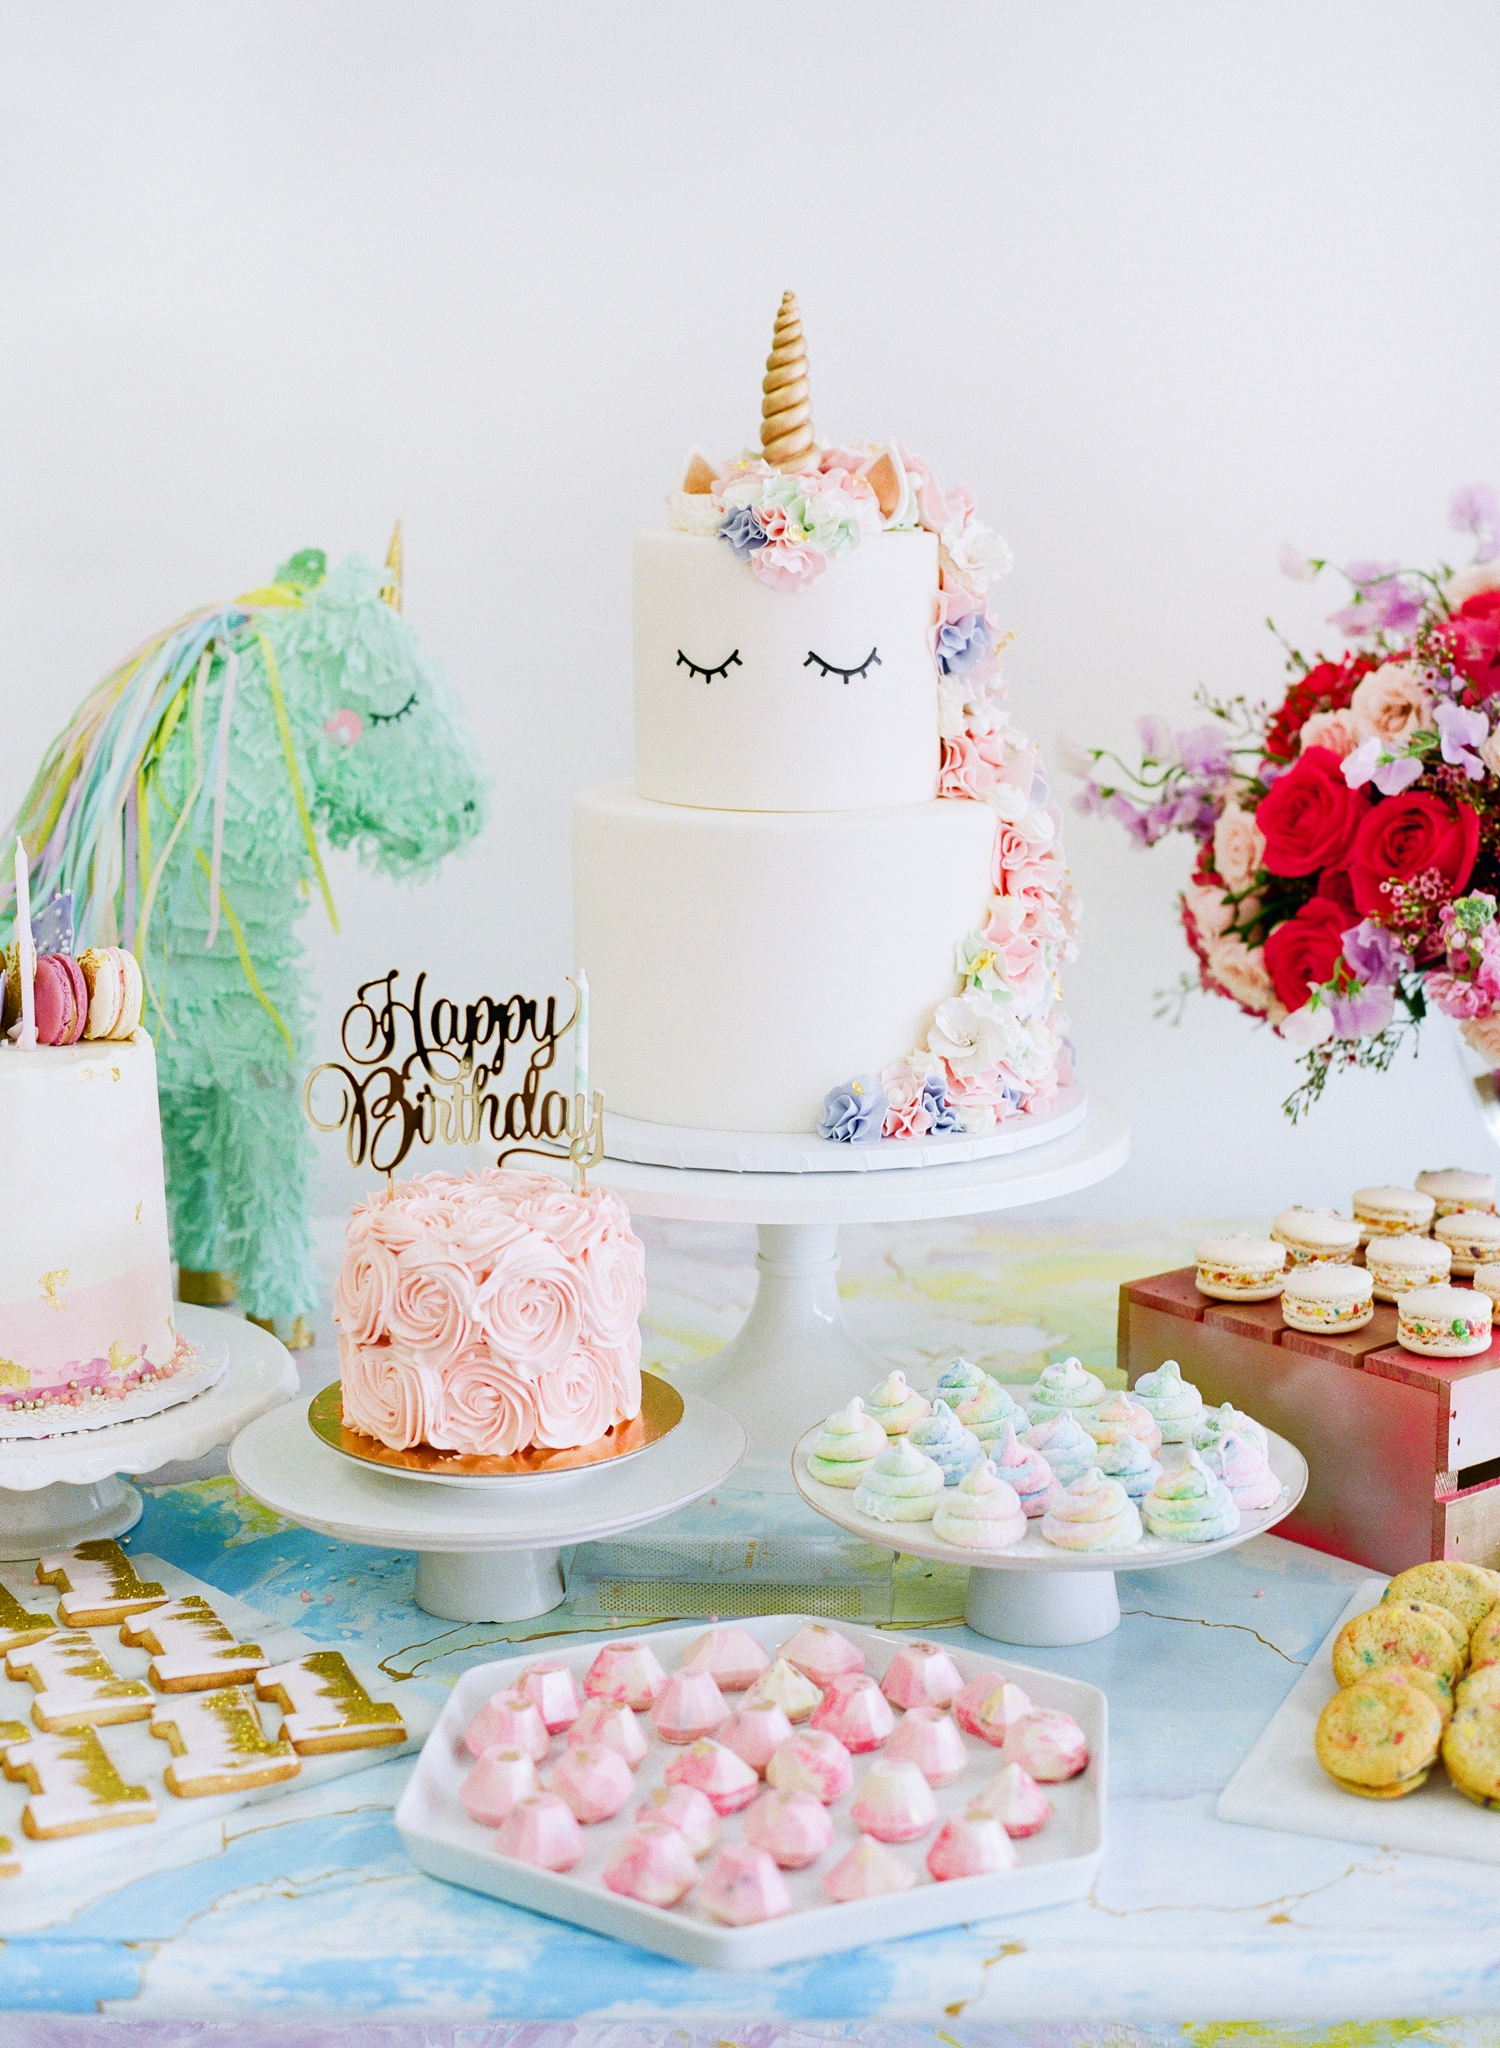 Parents Magazine: This Unicorn-Themed 1st Birthday Party Is Definitely the Stuff of Dreams